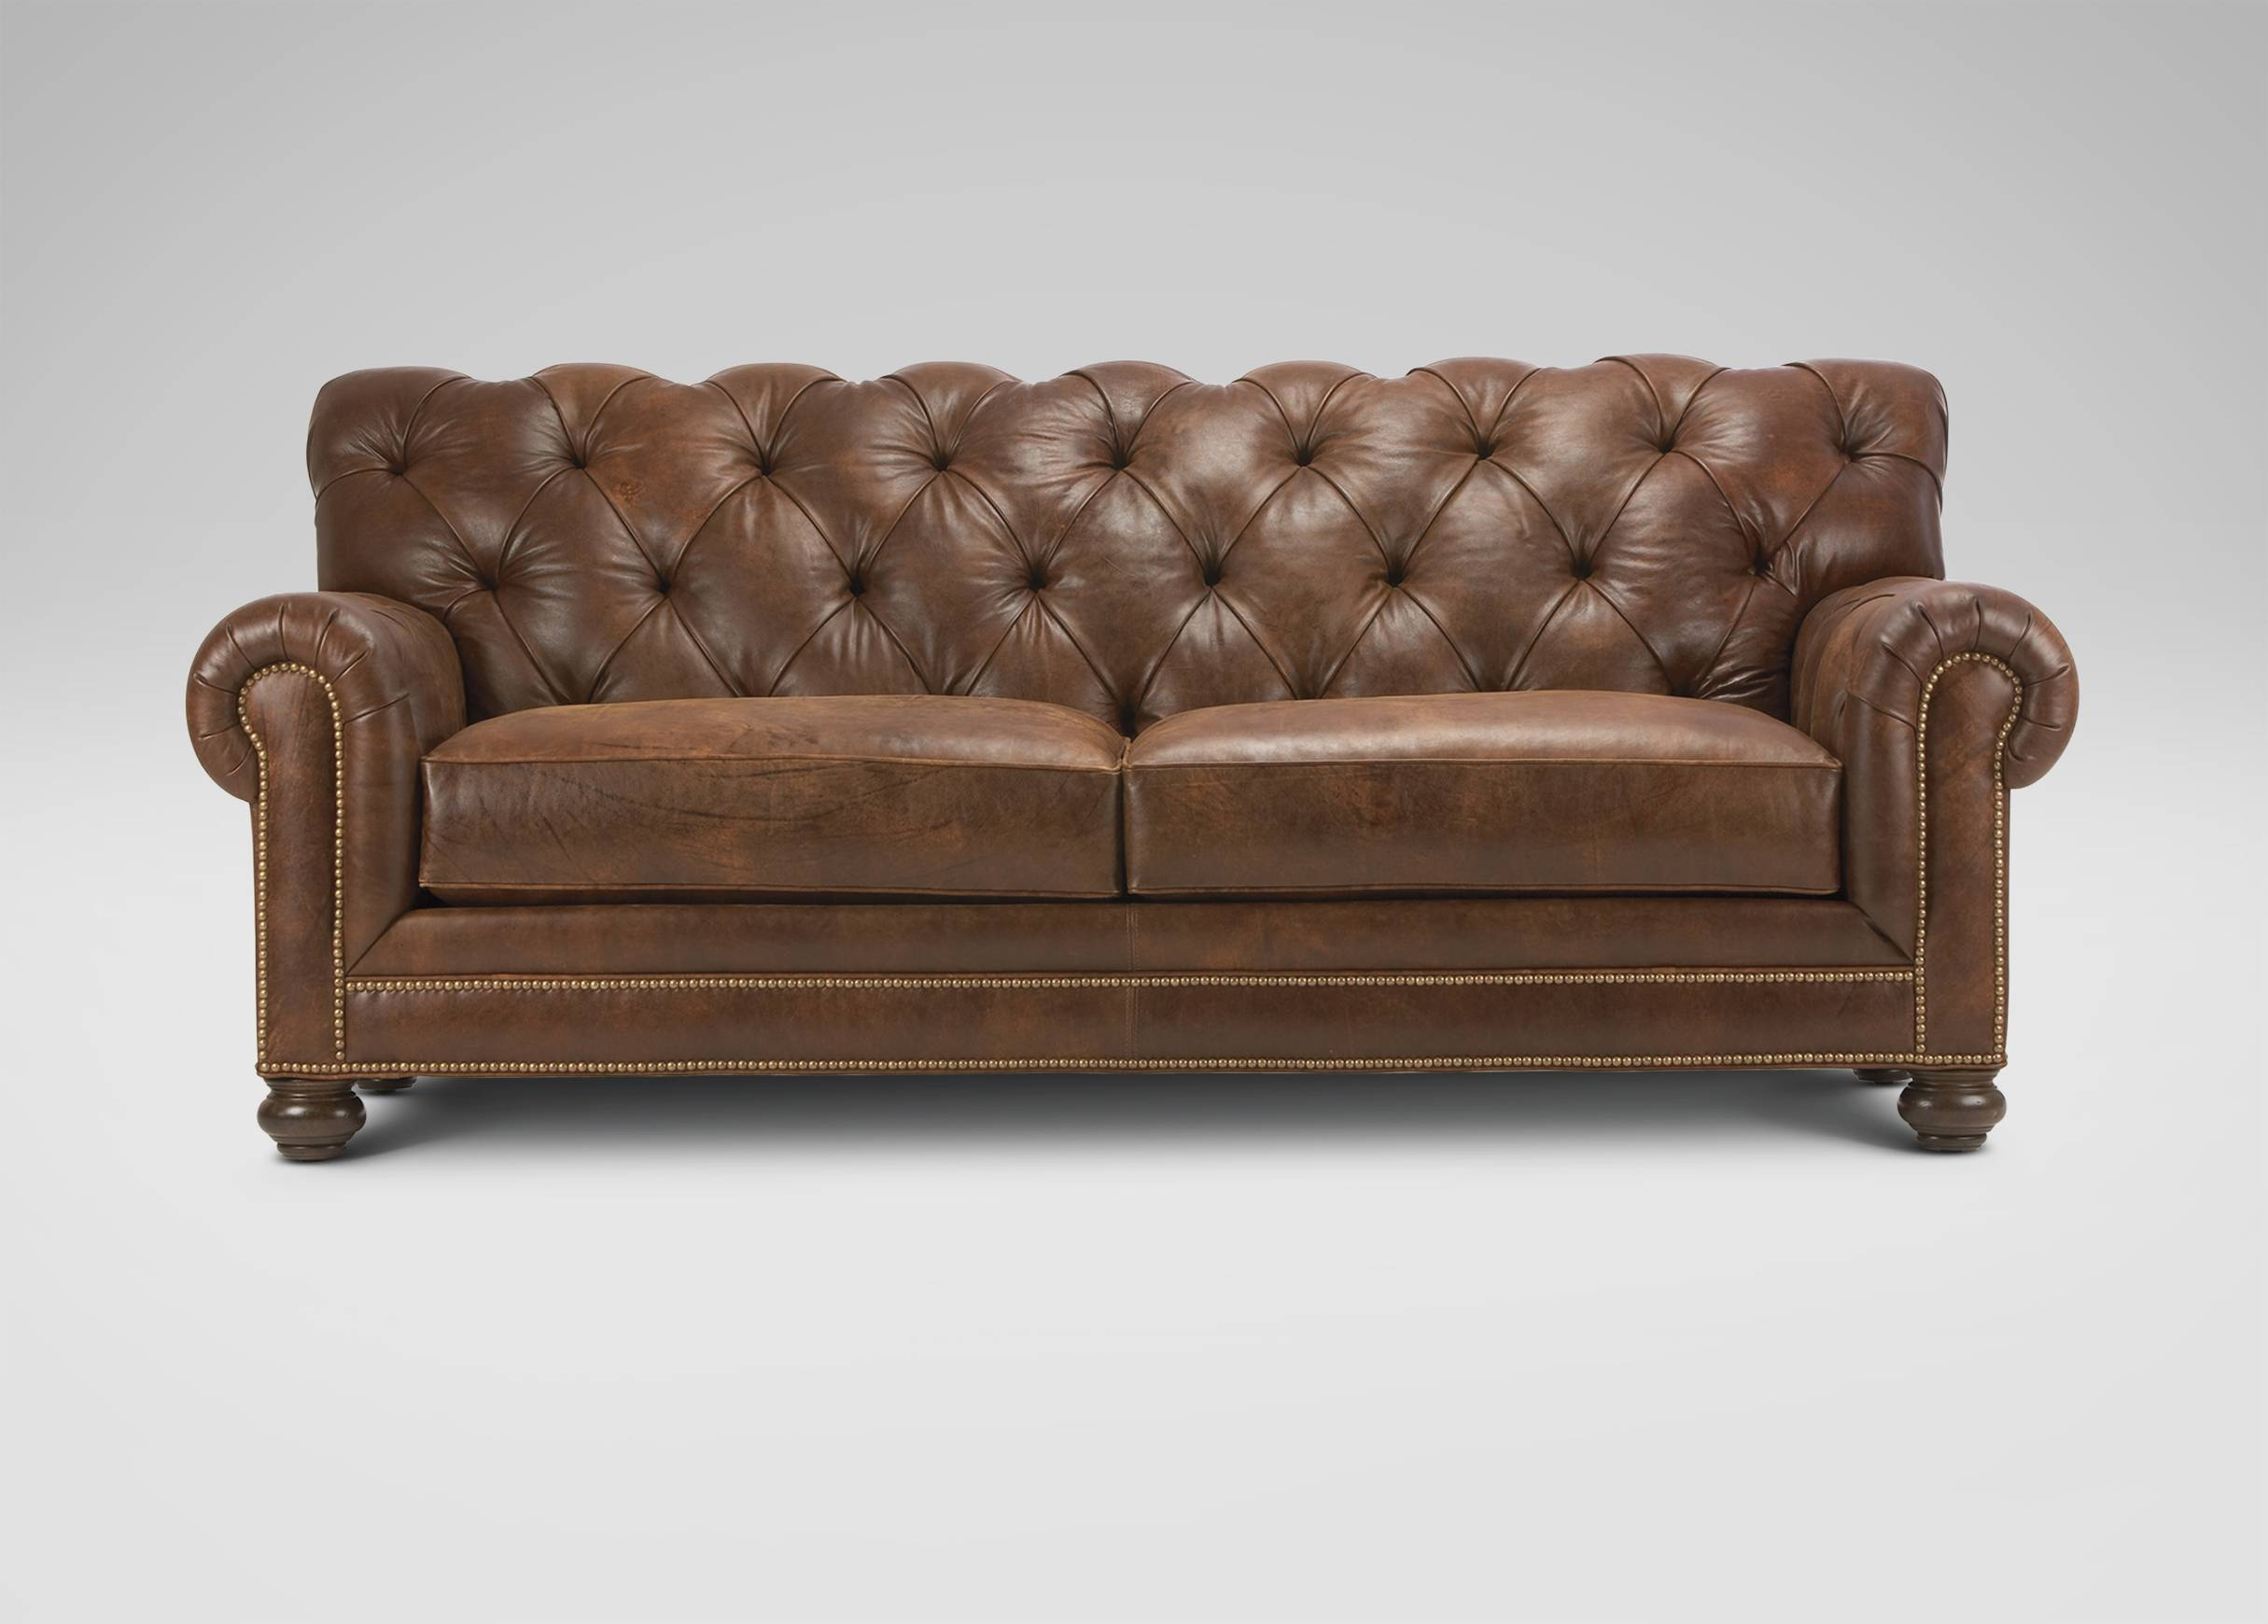 Fancy Tufted Leather Sofa 84 On Sofas And Couches Set With Tufted throughout Fancy Sofas (Image 14 of 30)